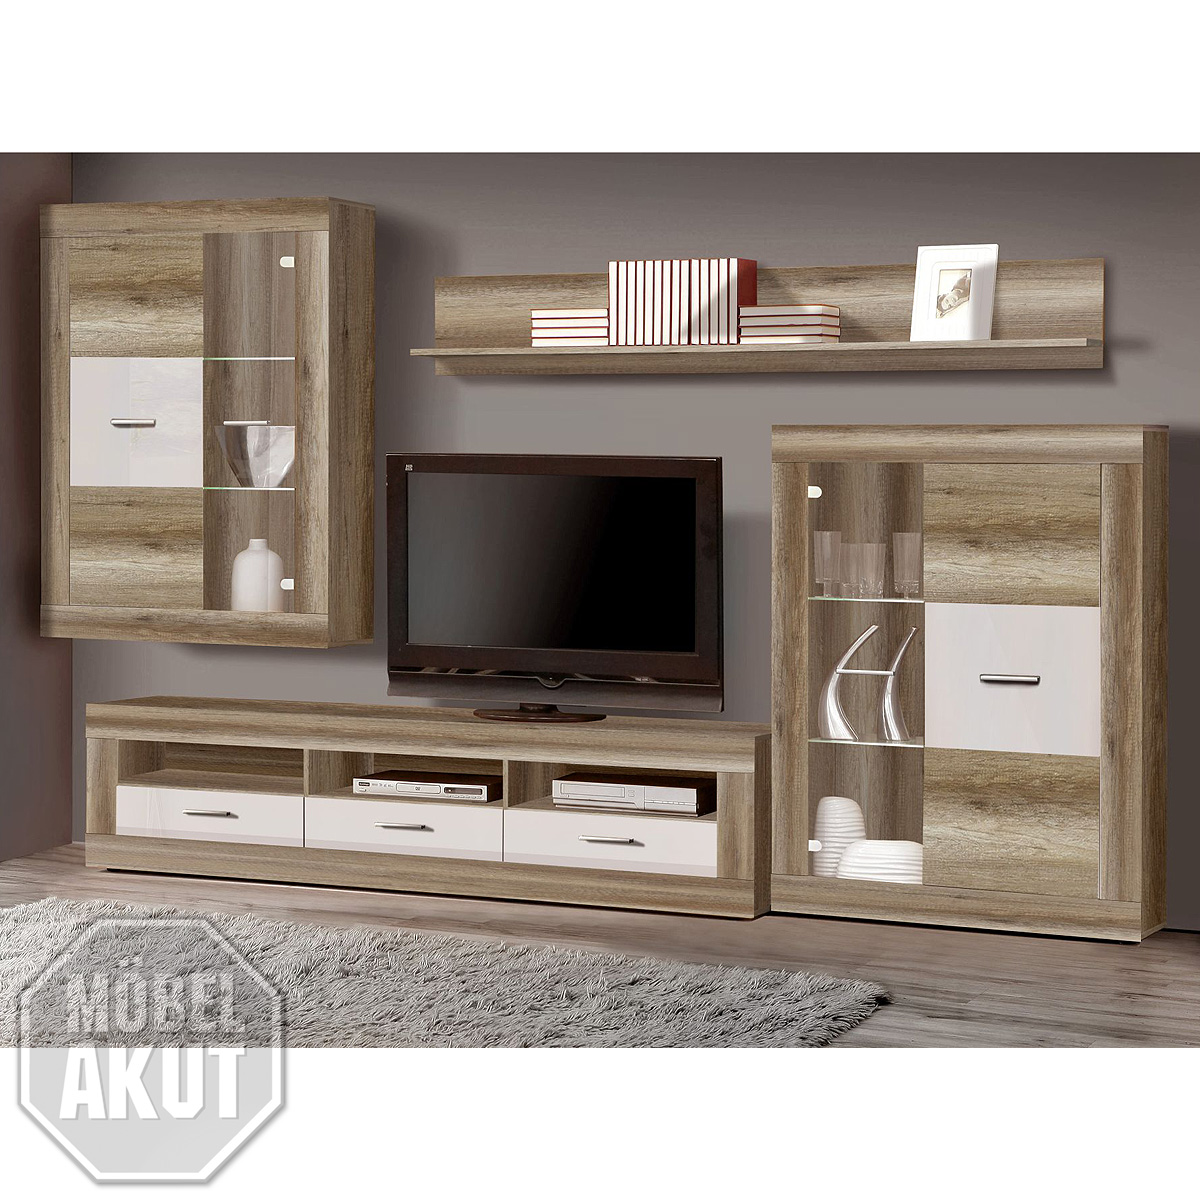 wohnwand gaucho anbauwand wohnzimmer eiche antik wei hochglanz led ebay. Black Bedroom Furniture Sets. Home Design Ideas